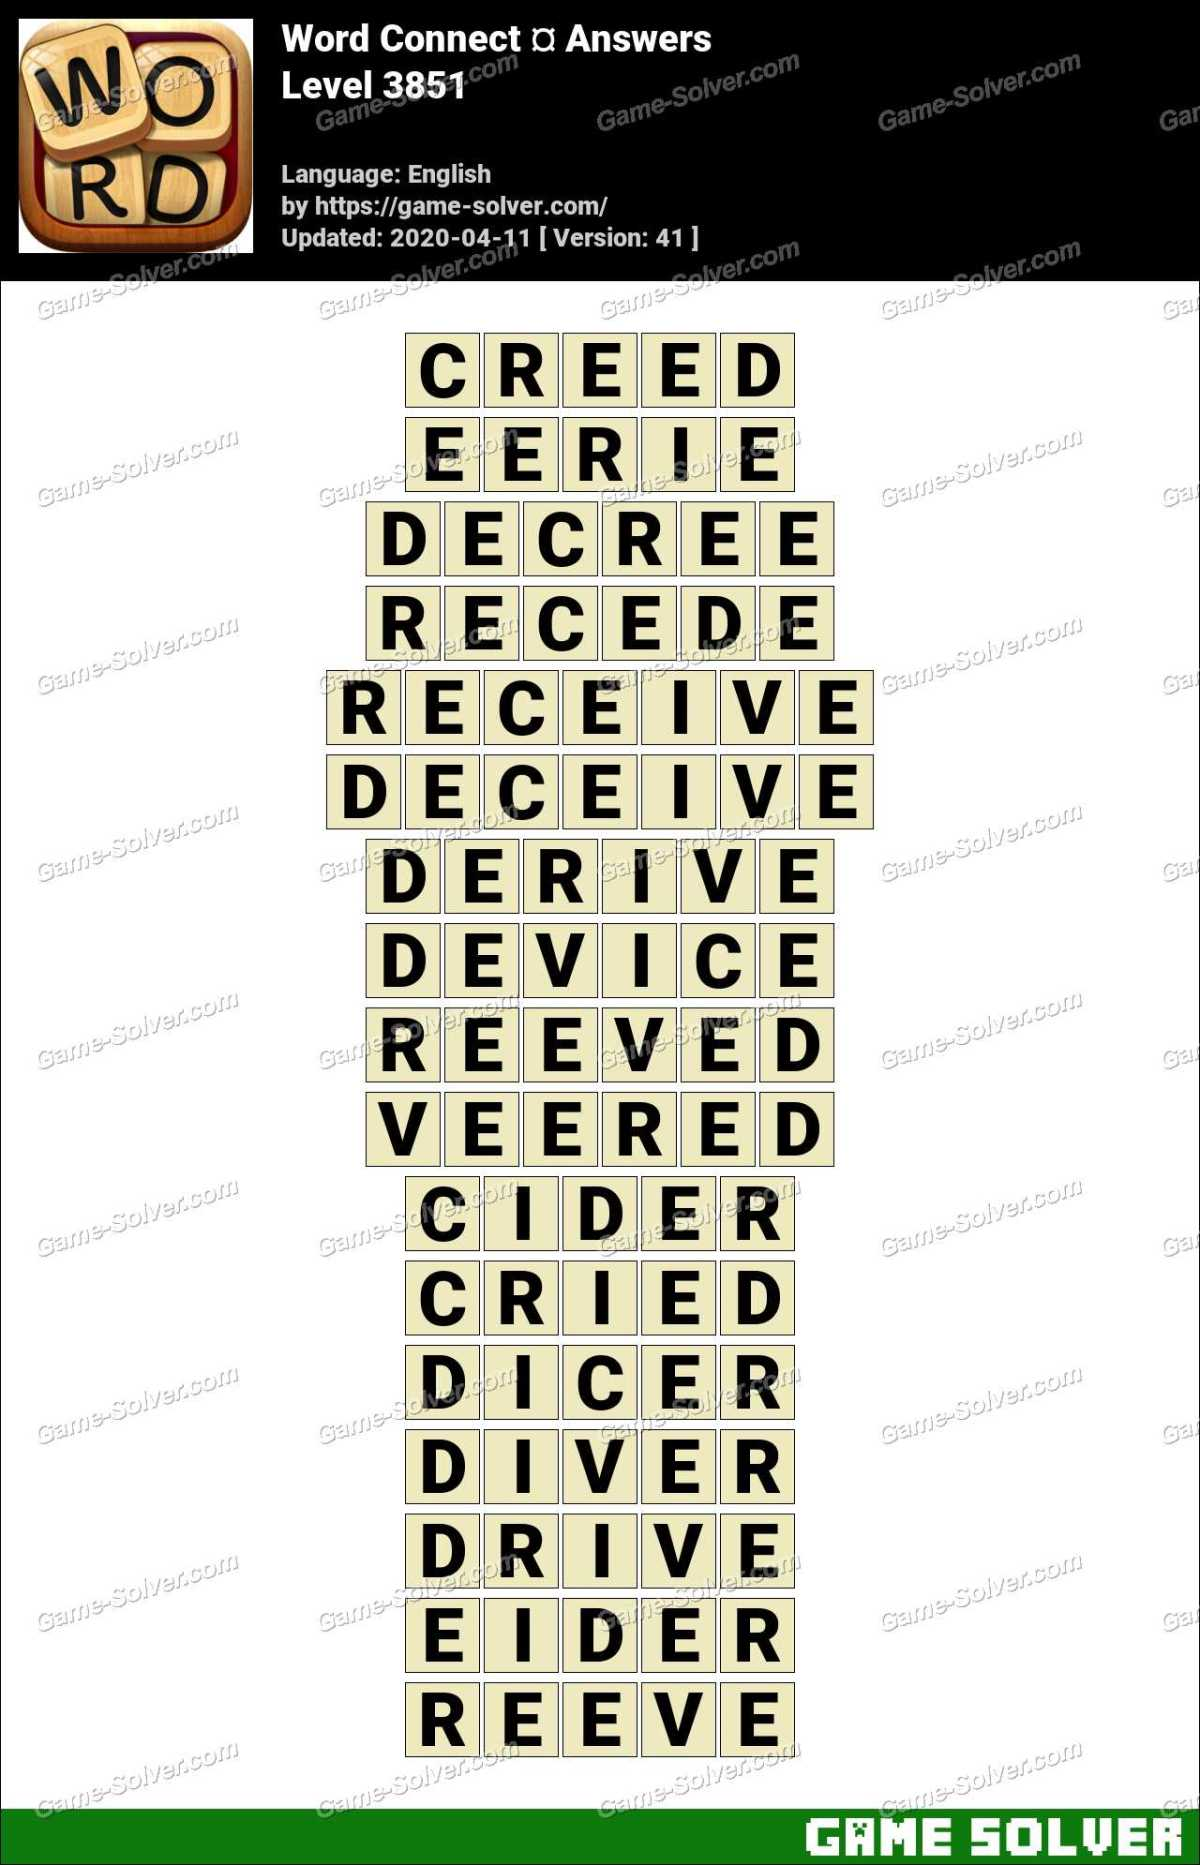 Word Connect Level 3851 Answers